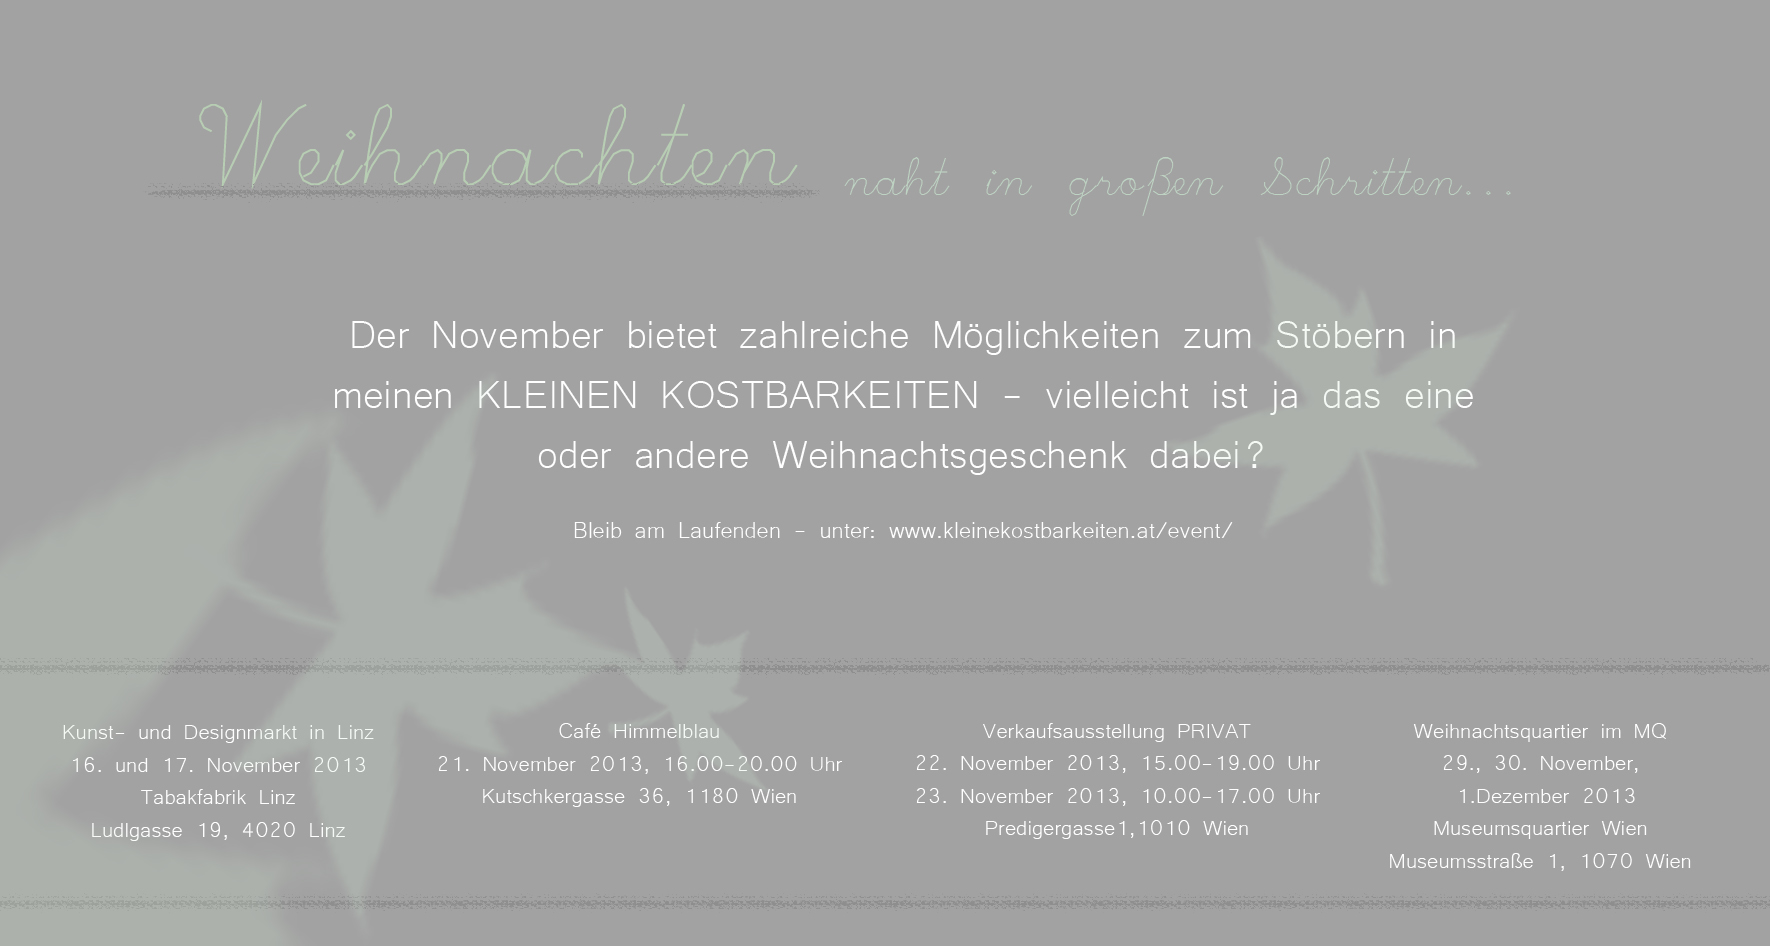 Newsletter 01 Kopie.jpg